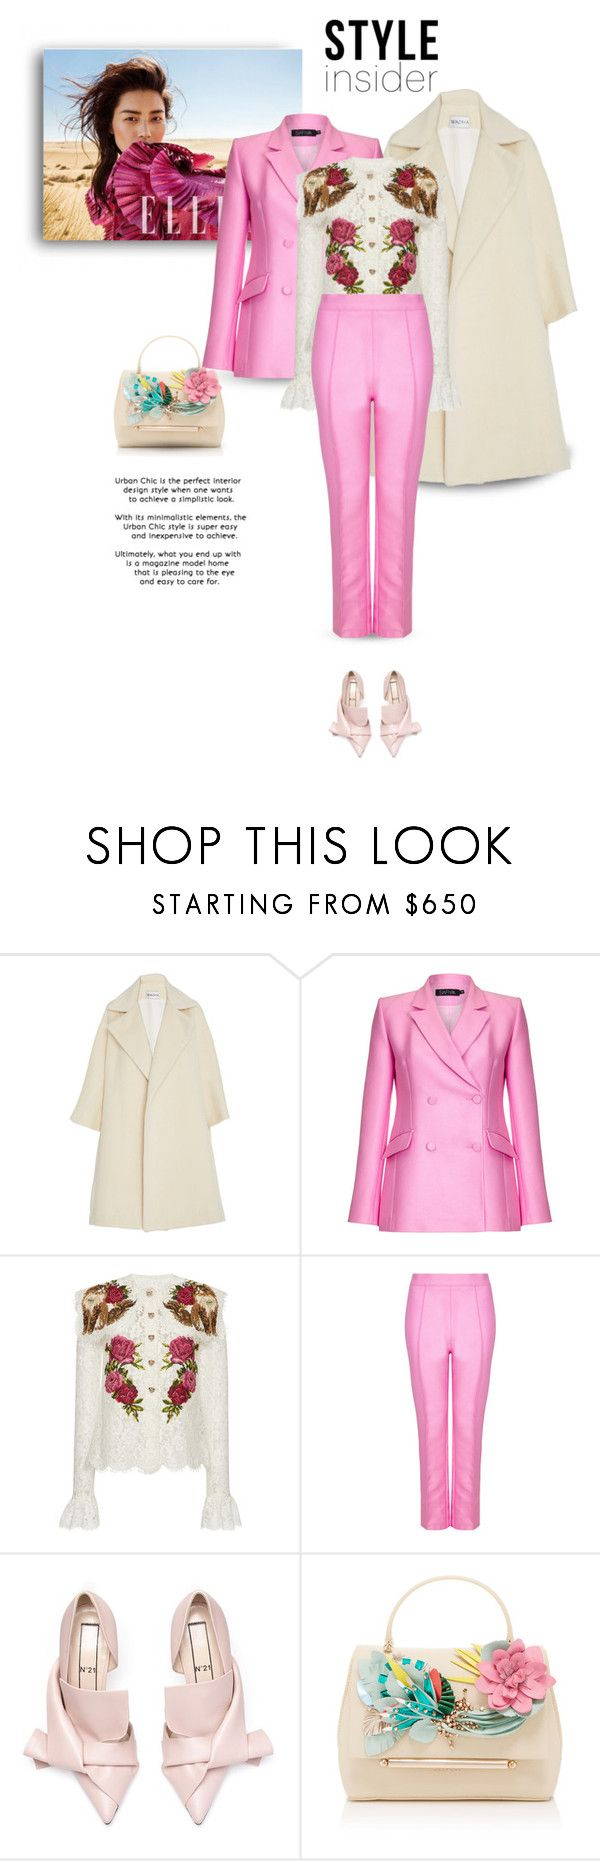 """01.02.2018"" by bliznec-anna ❤ liked on Polyvore featuring Safiyaa, Dolce&Gabbana and Delpozo"